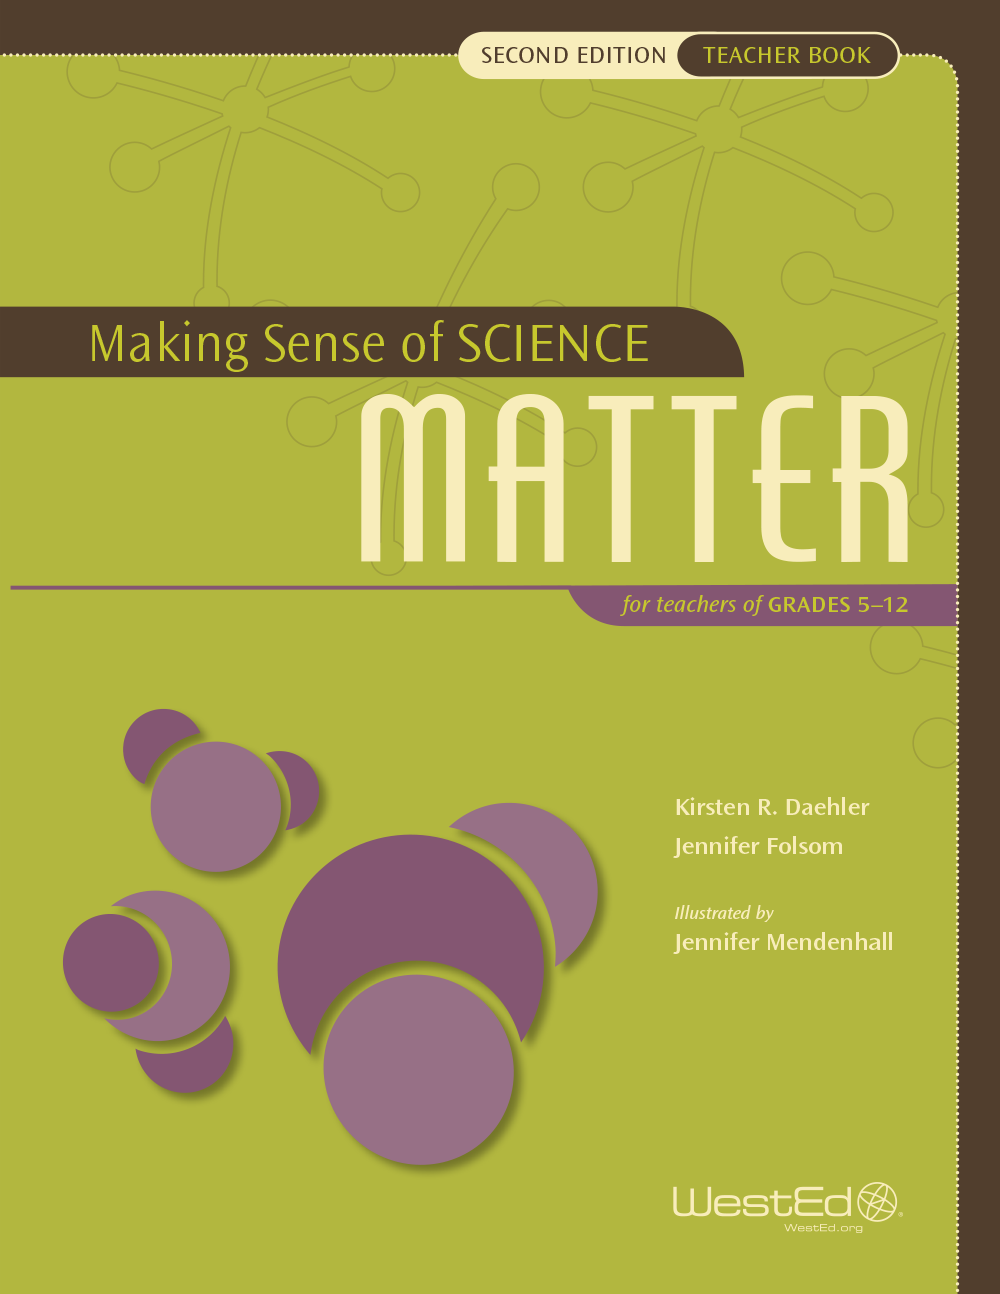 K 12 science education professional learning wested making sense of science matter for teachers of grades 5 12 teacher book fandeluxe Choice Image